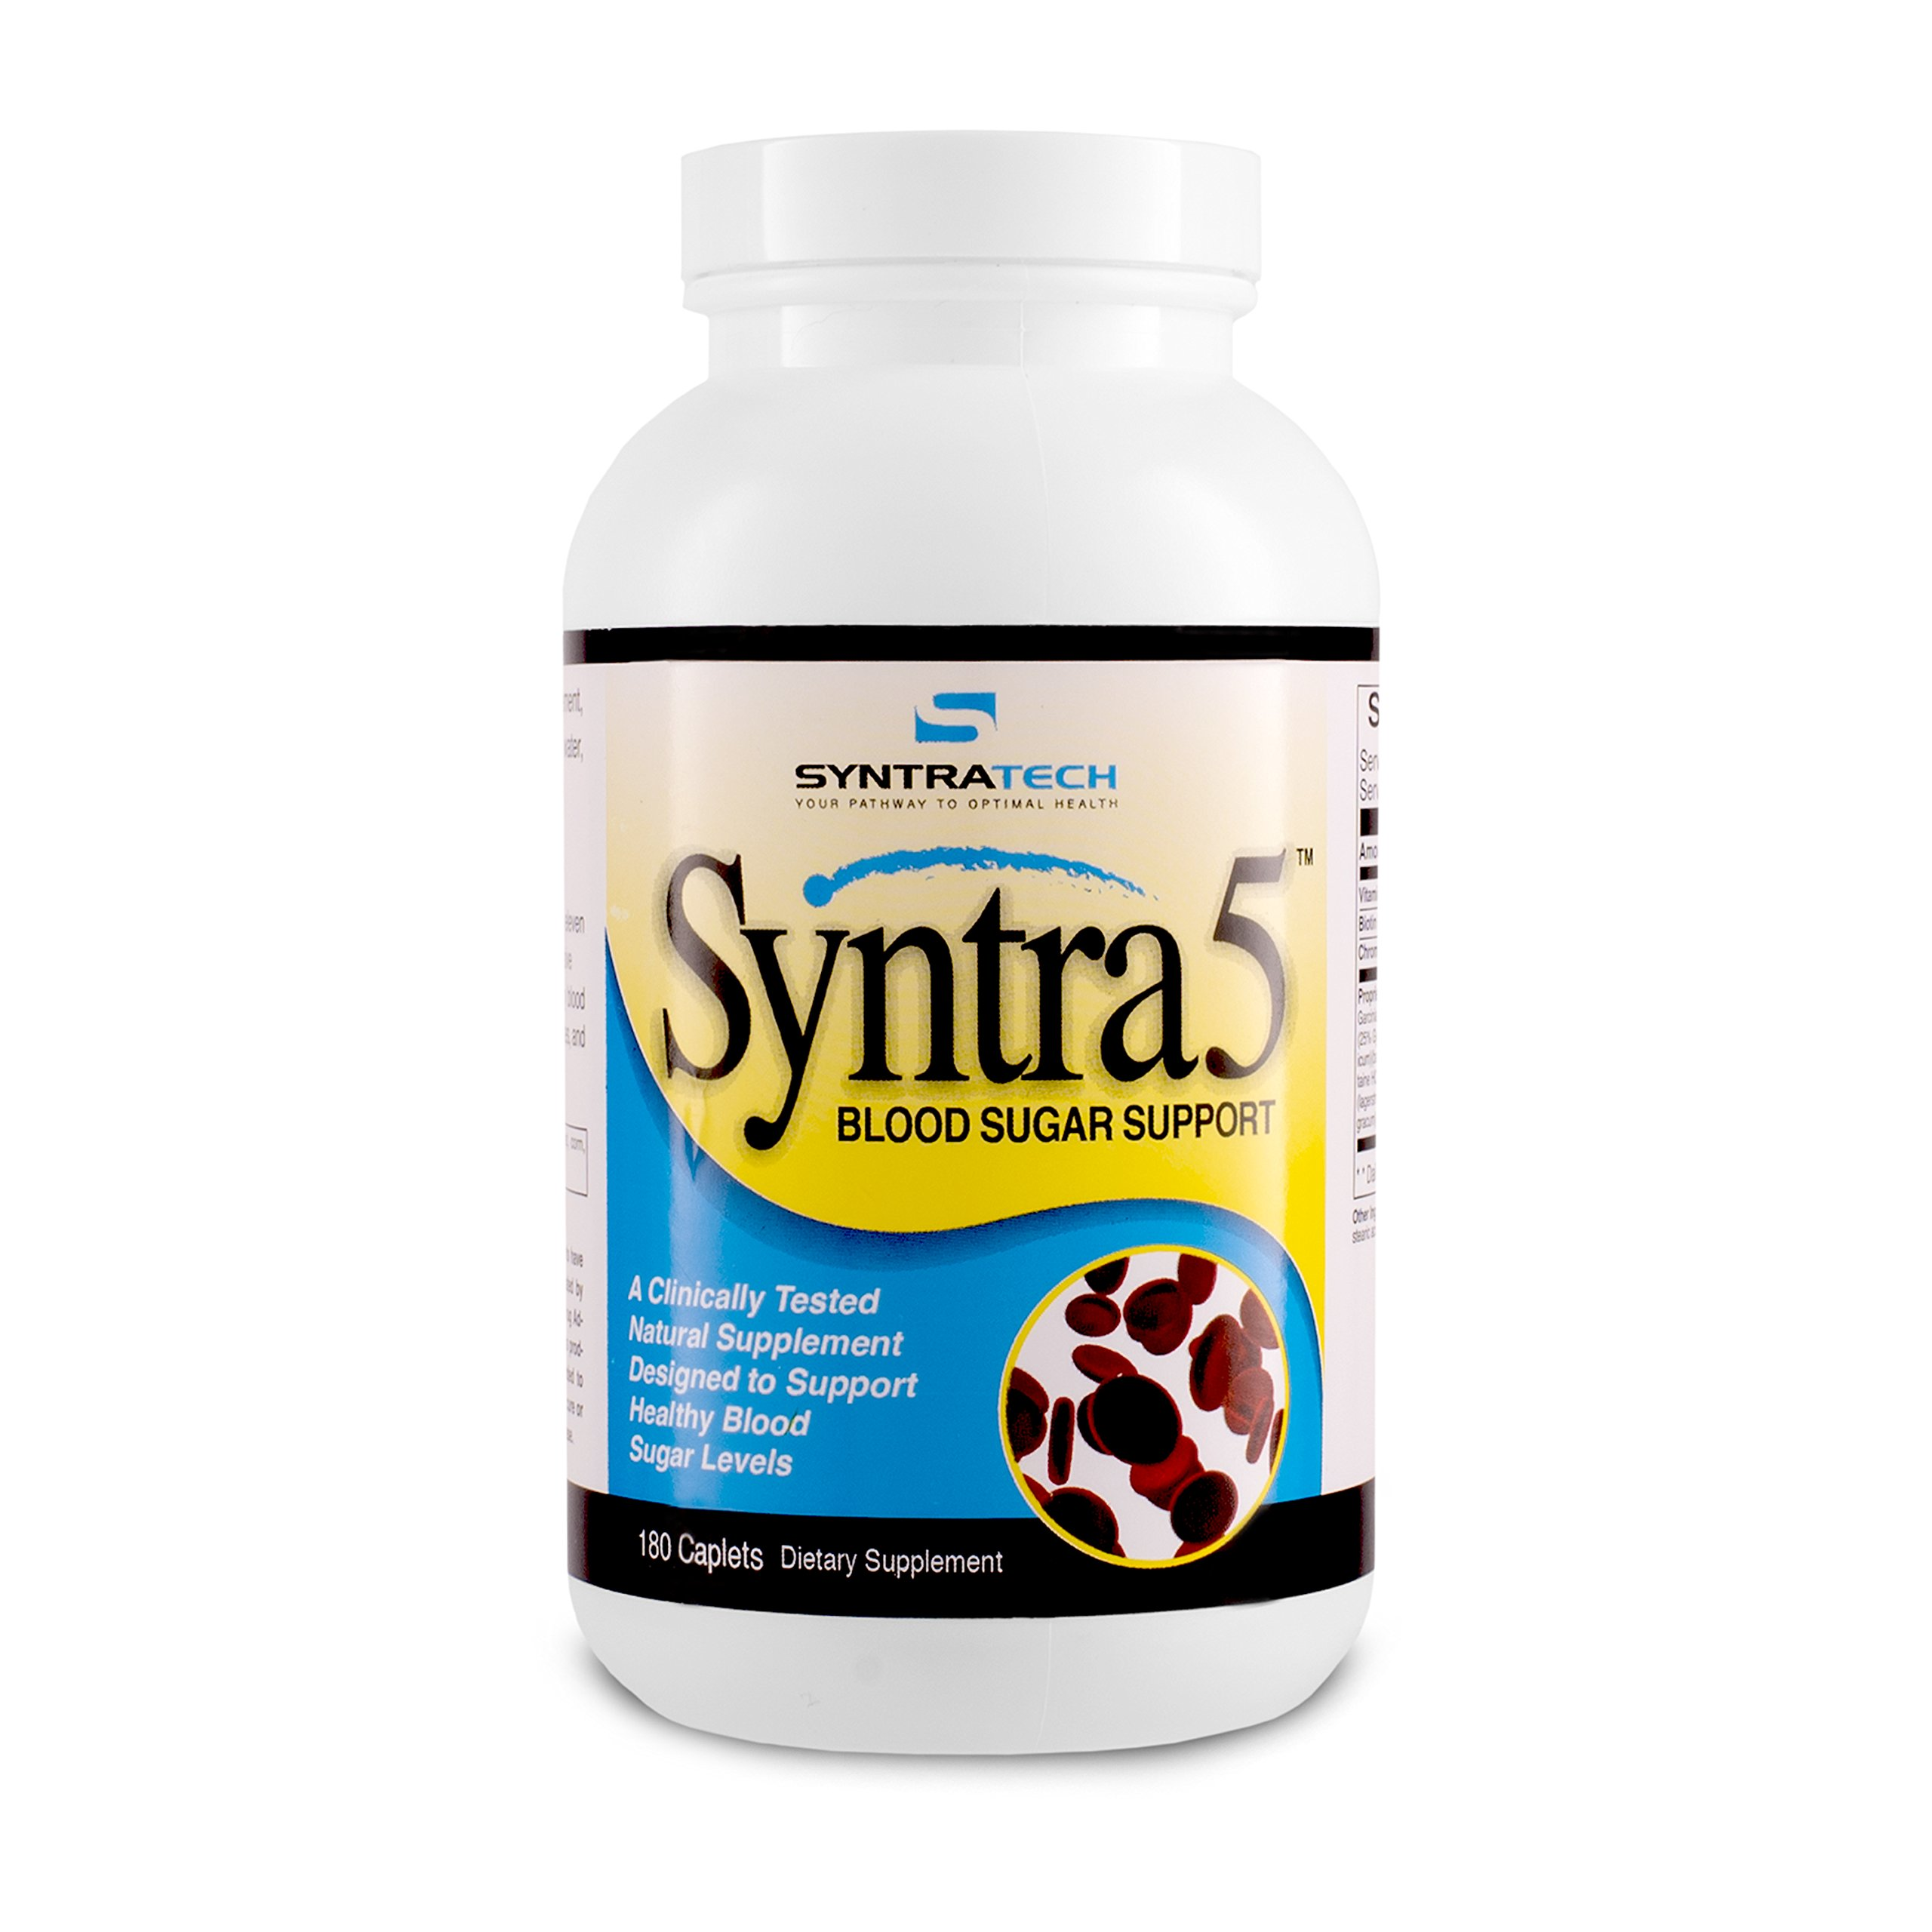 Syntratech Syntra5 180 Caps - Multi-Faceted Blood Sugar Support Formula - Assists In Maintaining Healthy Blood Sugar Levels - Backed By Clinical Research